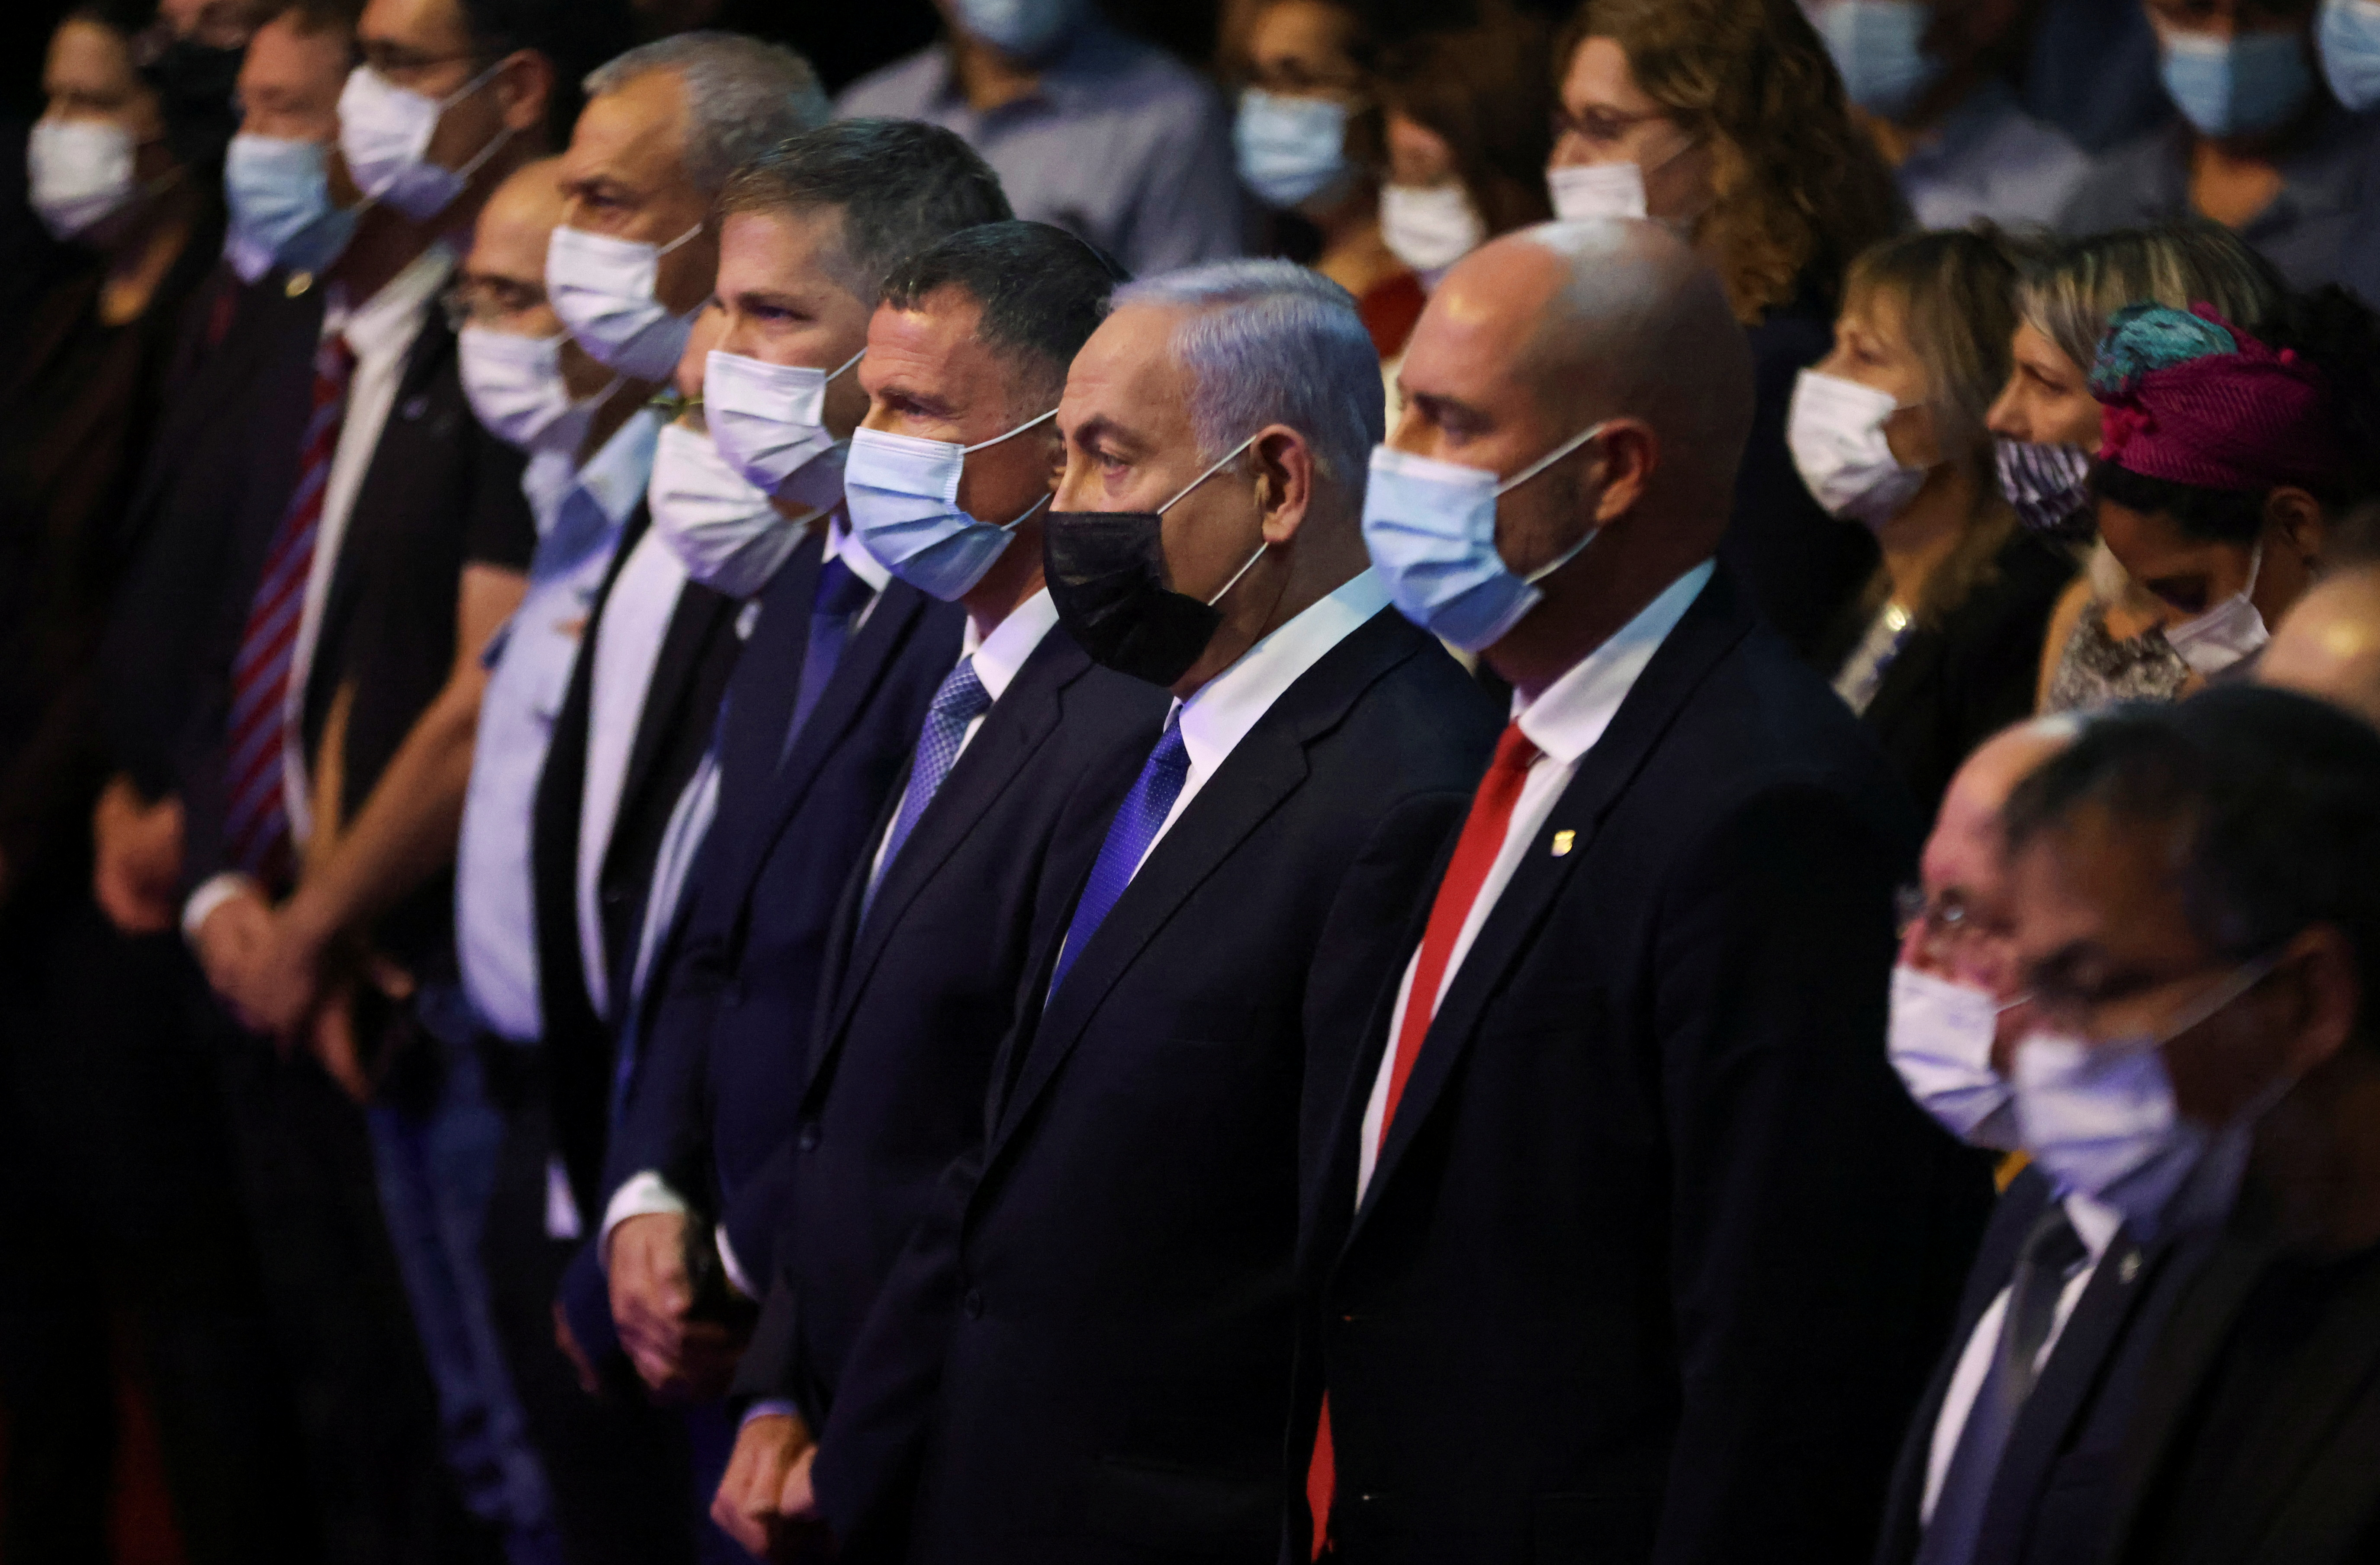 Israeli Prime Minister Benjamin Netanyahu attends a ceremony to show appreciation to the health sector for their contribution in the fight against the coronavirus disease (COVID-19), in Jerusalem June 6, 2021. REUTERS/Ronen Zvulun